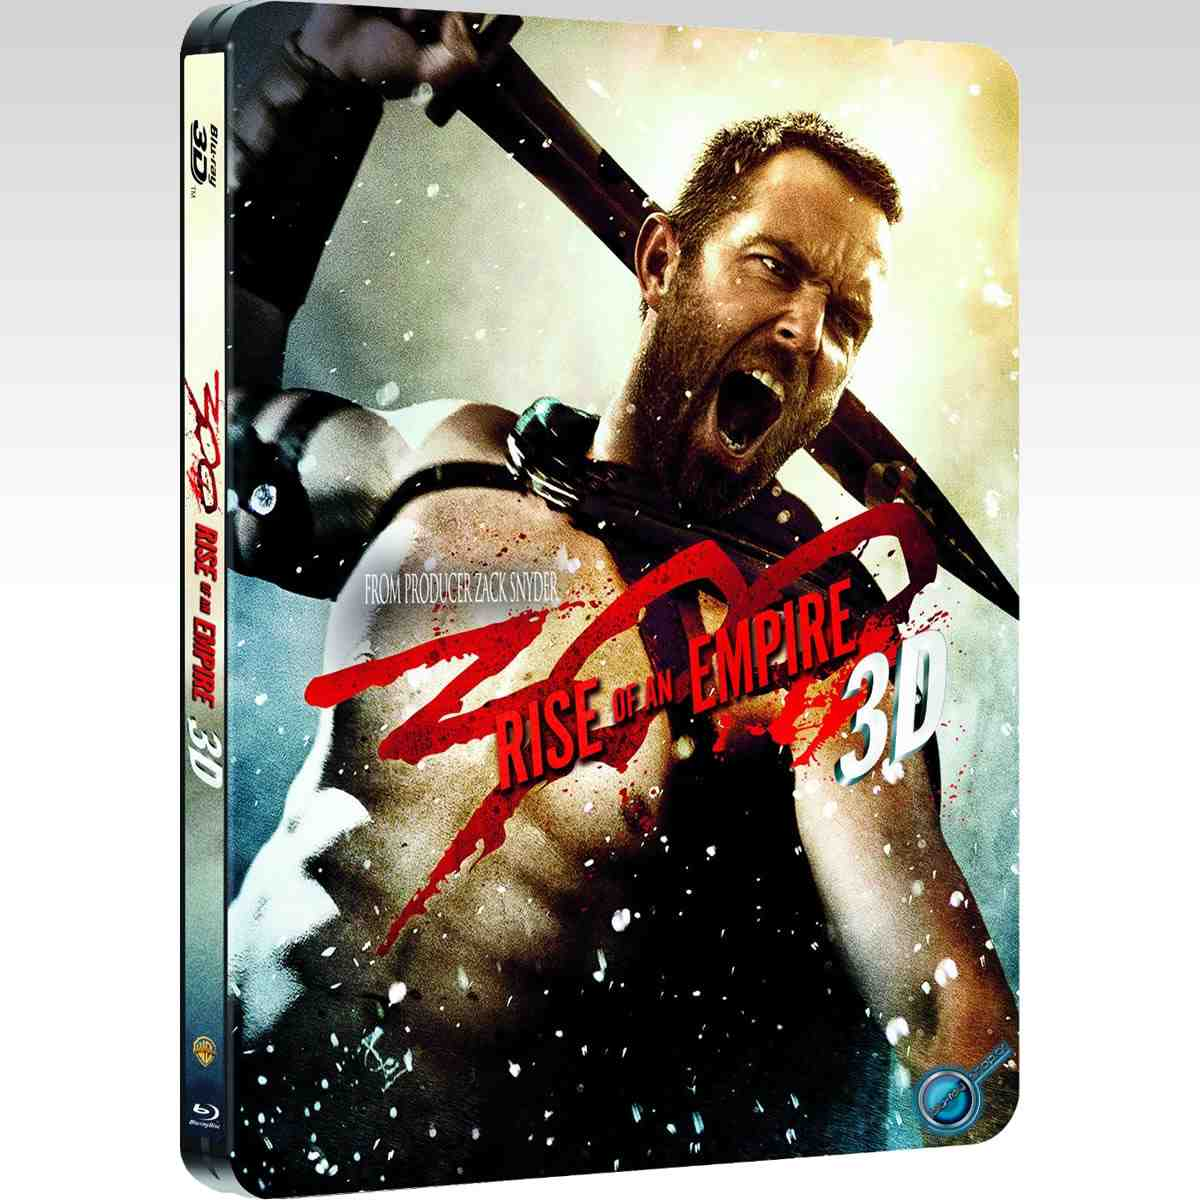 300: RISE OF AN EMPIRE 3D - 300: Η ΑΝΟΔΟΣ ΤΗΣ ΑΥΤΟΚΡΑΤΟΡΙΑΣ 3D Limited Collector's Edition FuturePak (BLU-RAY 3D + BLU-RAY)